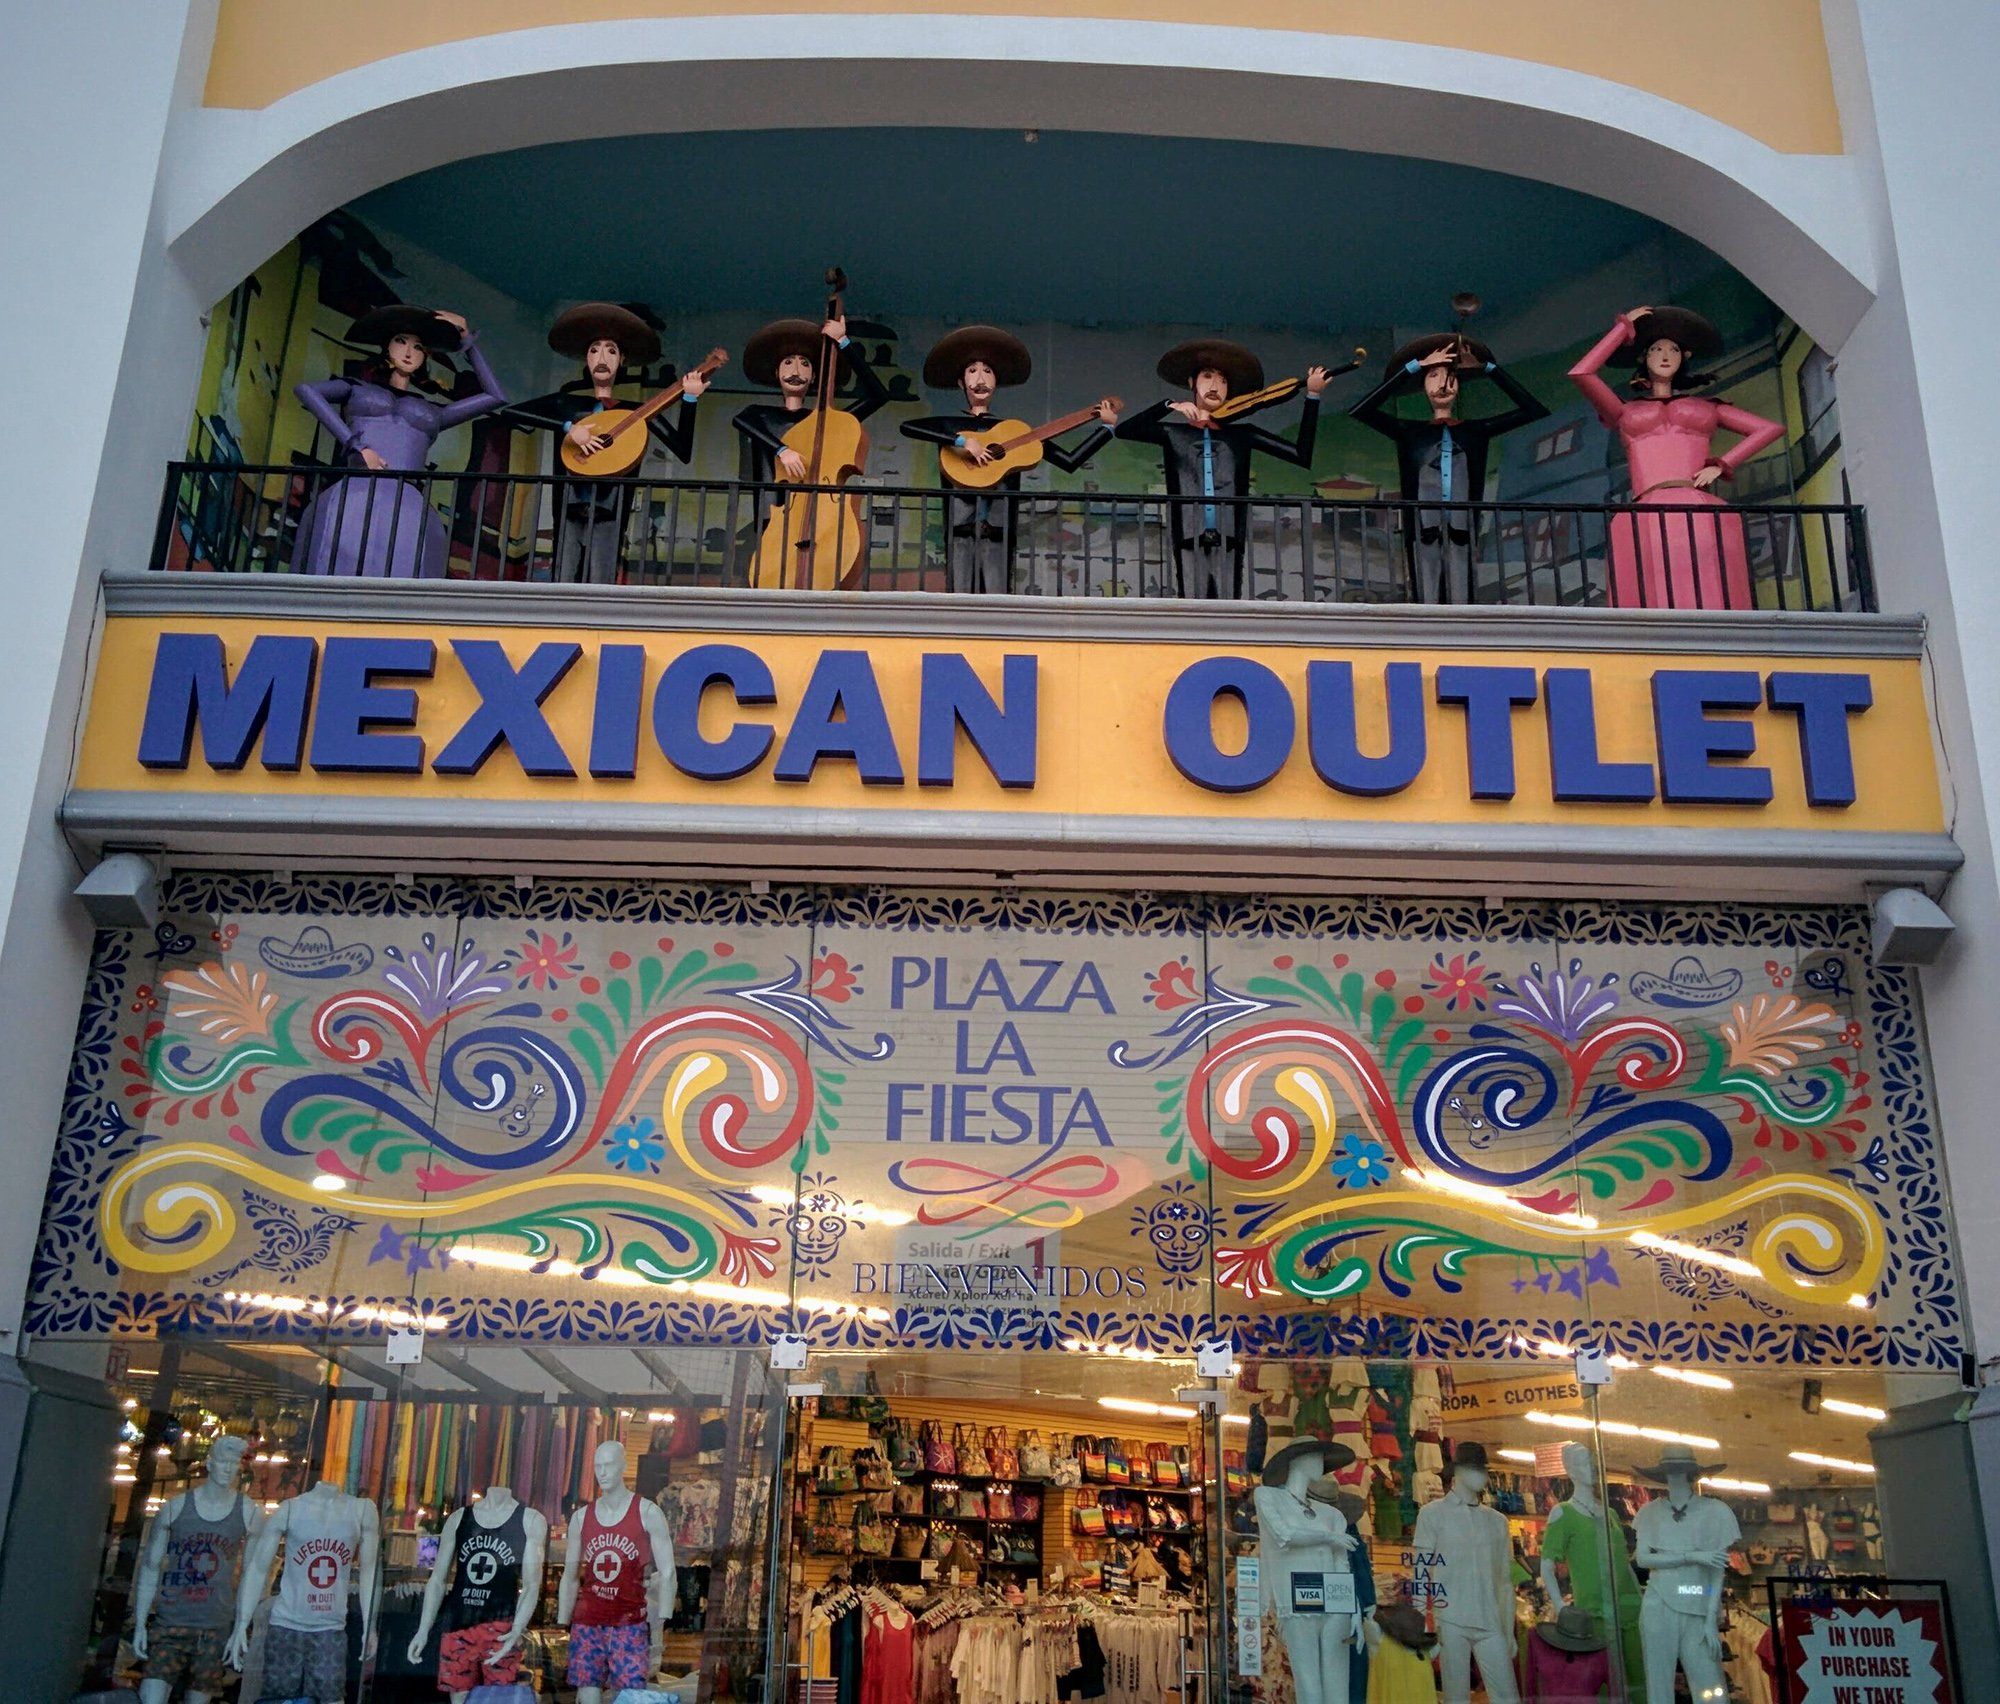 Mexican outlet